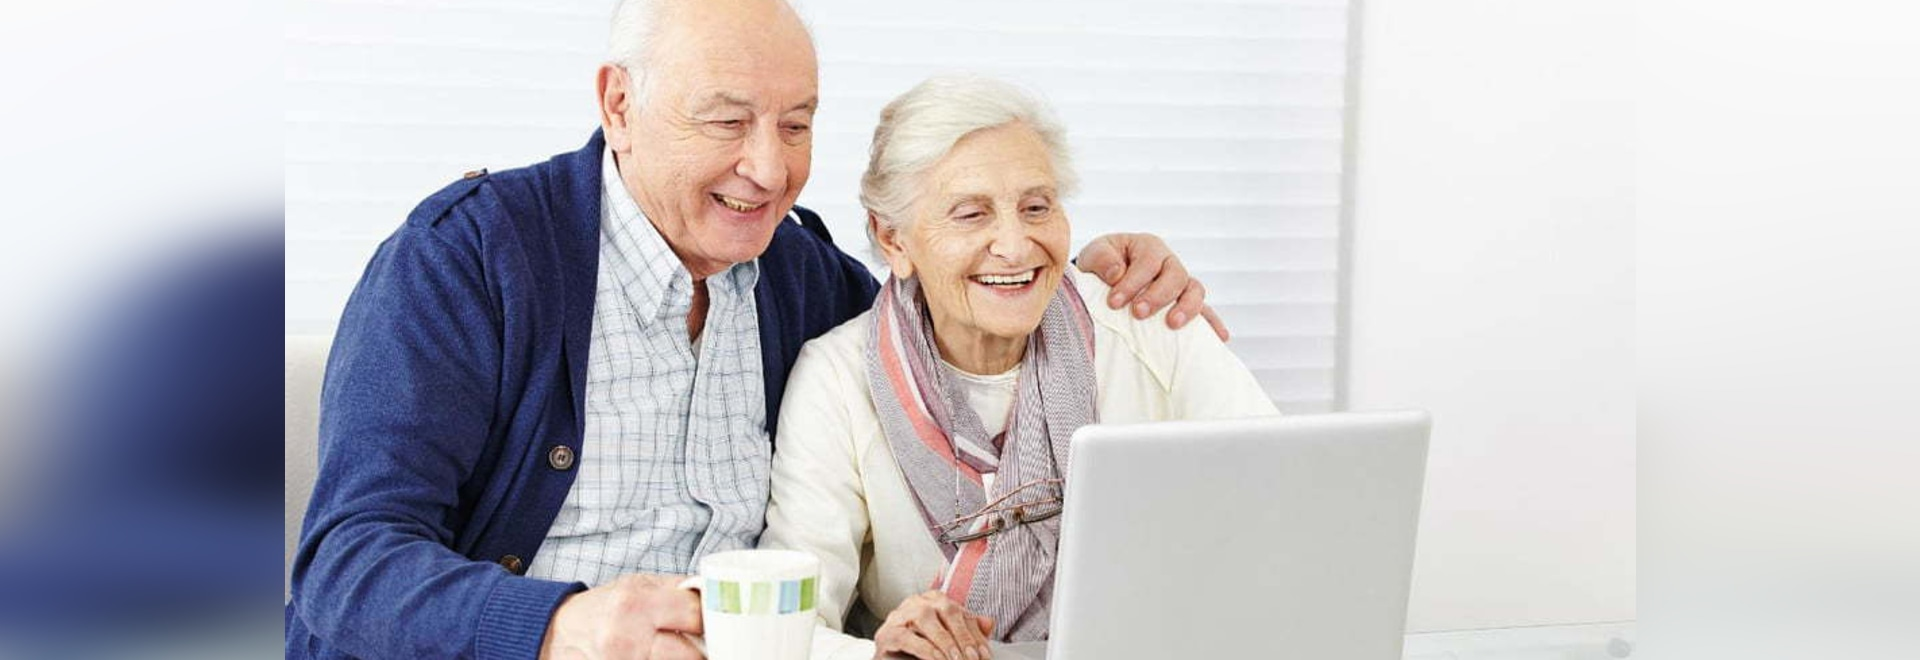 Smart home technology may help senior citizens remain independent